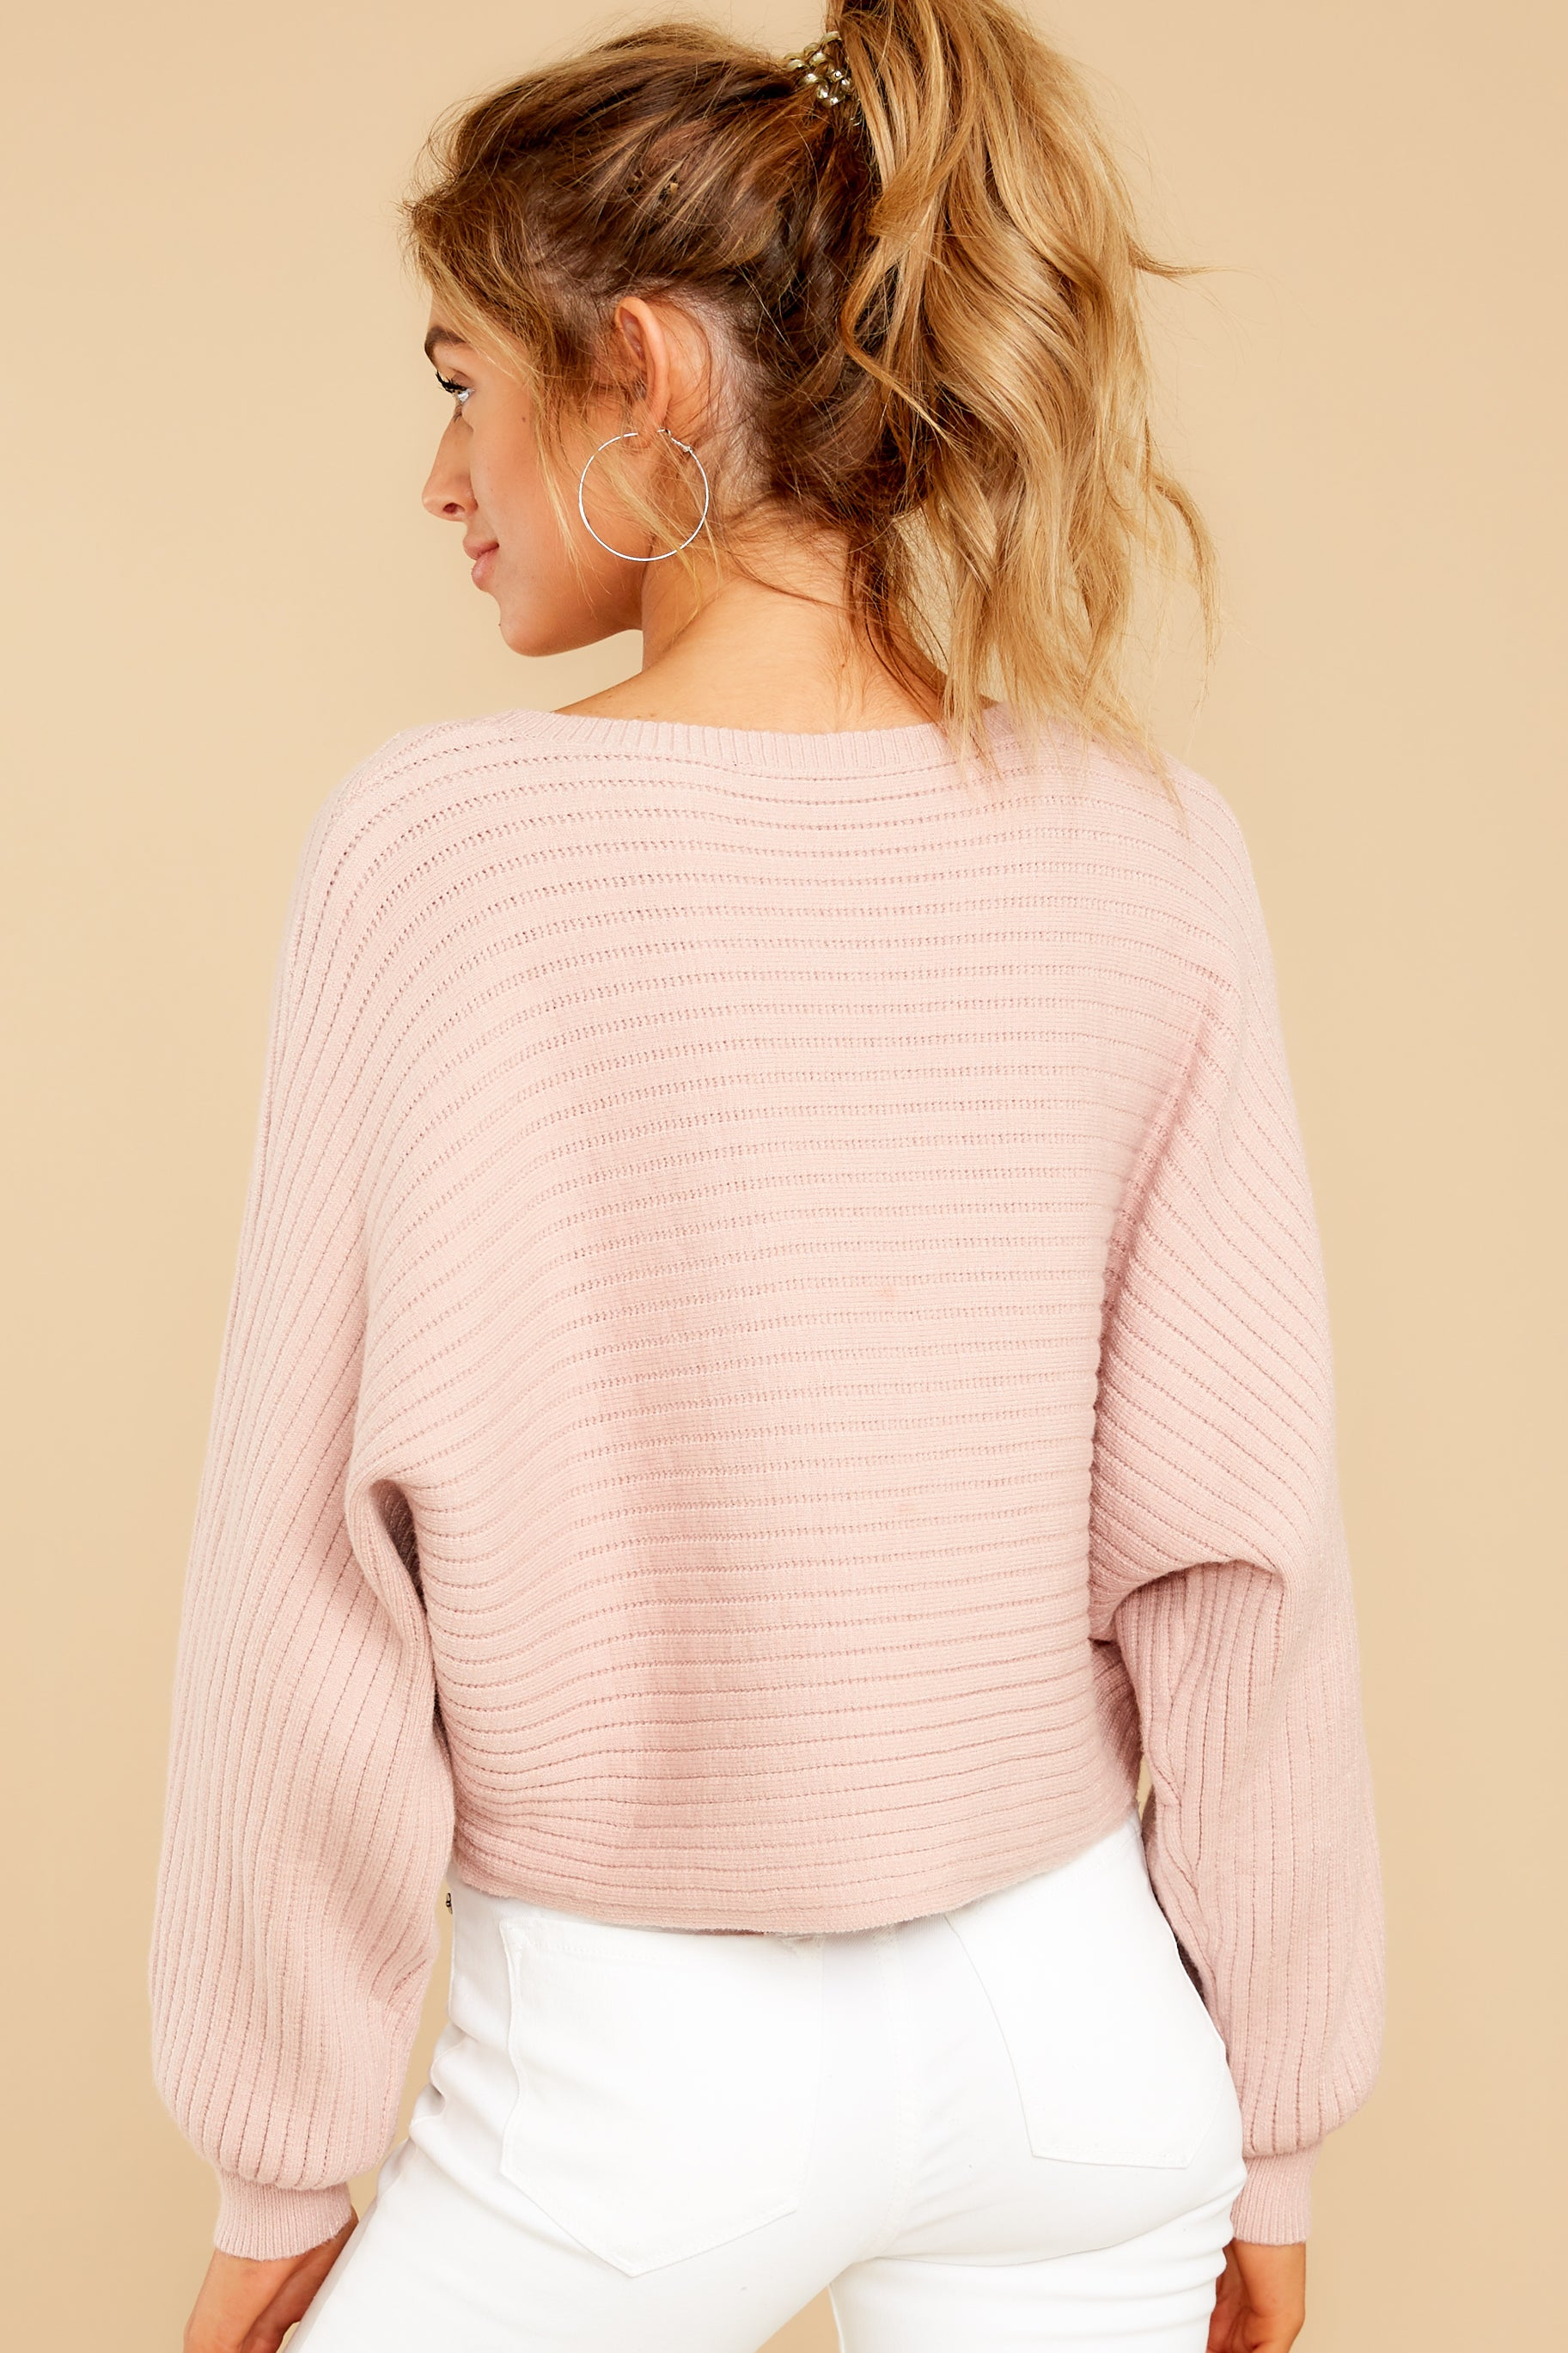 8 Just Your Type Light Pink Crop Sweater at reddressboutique.com